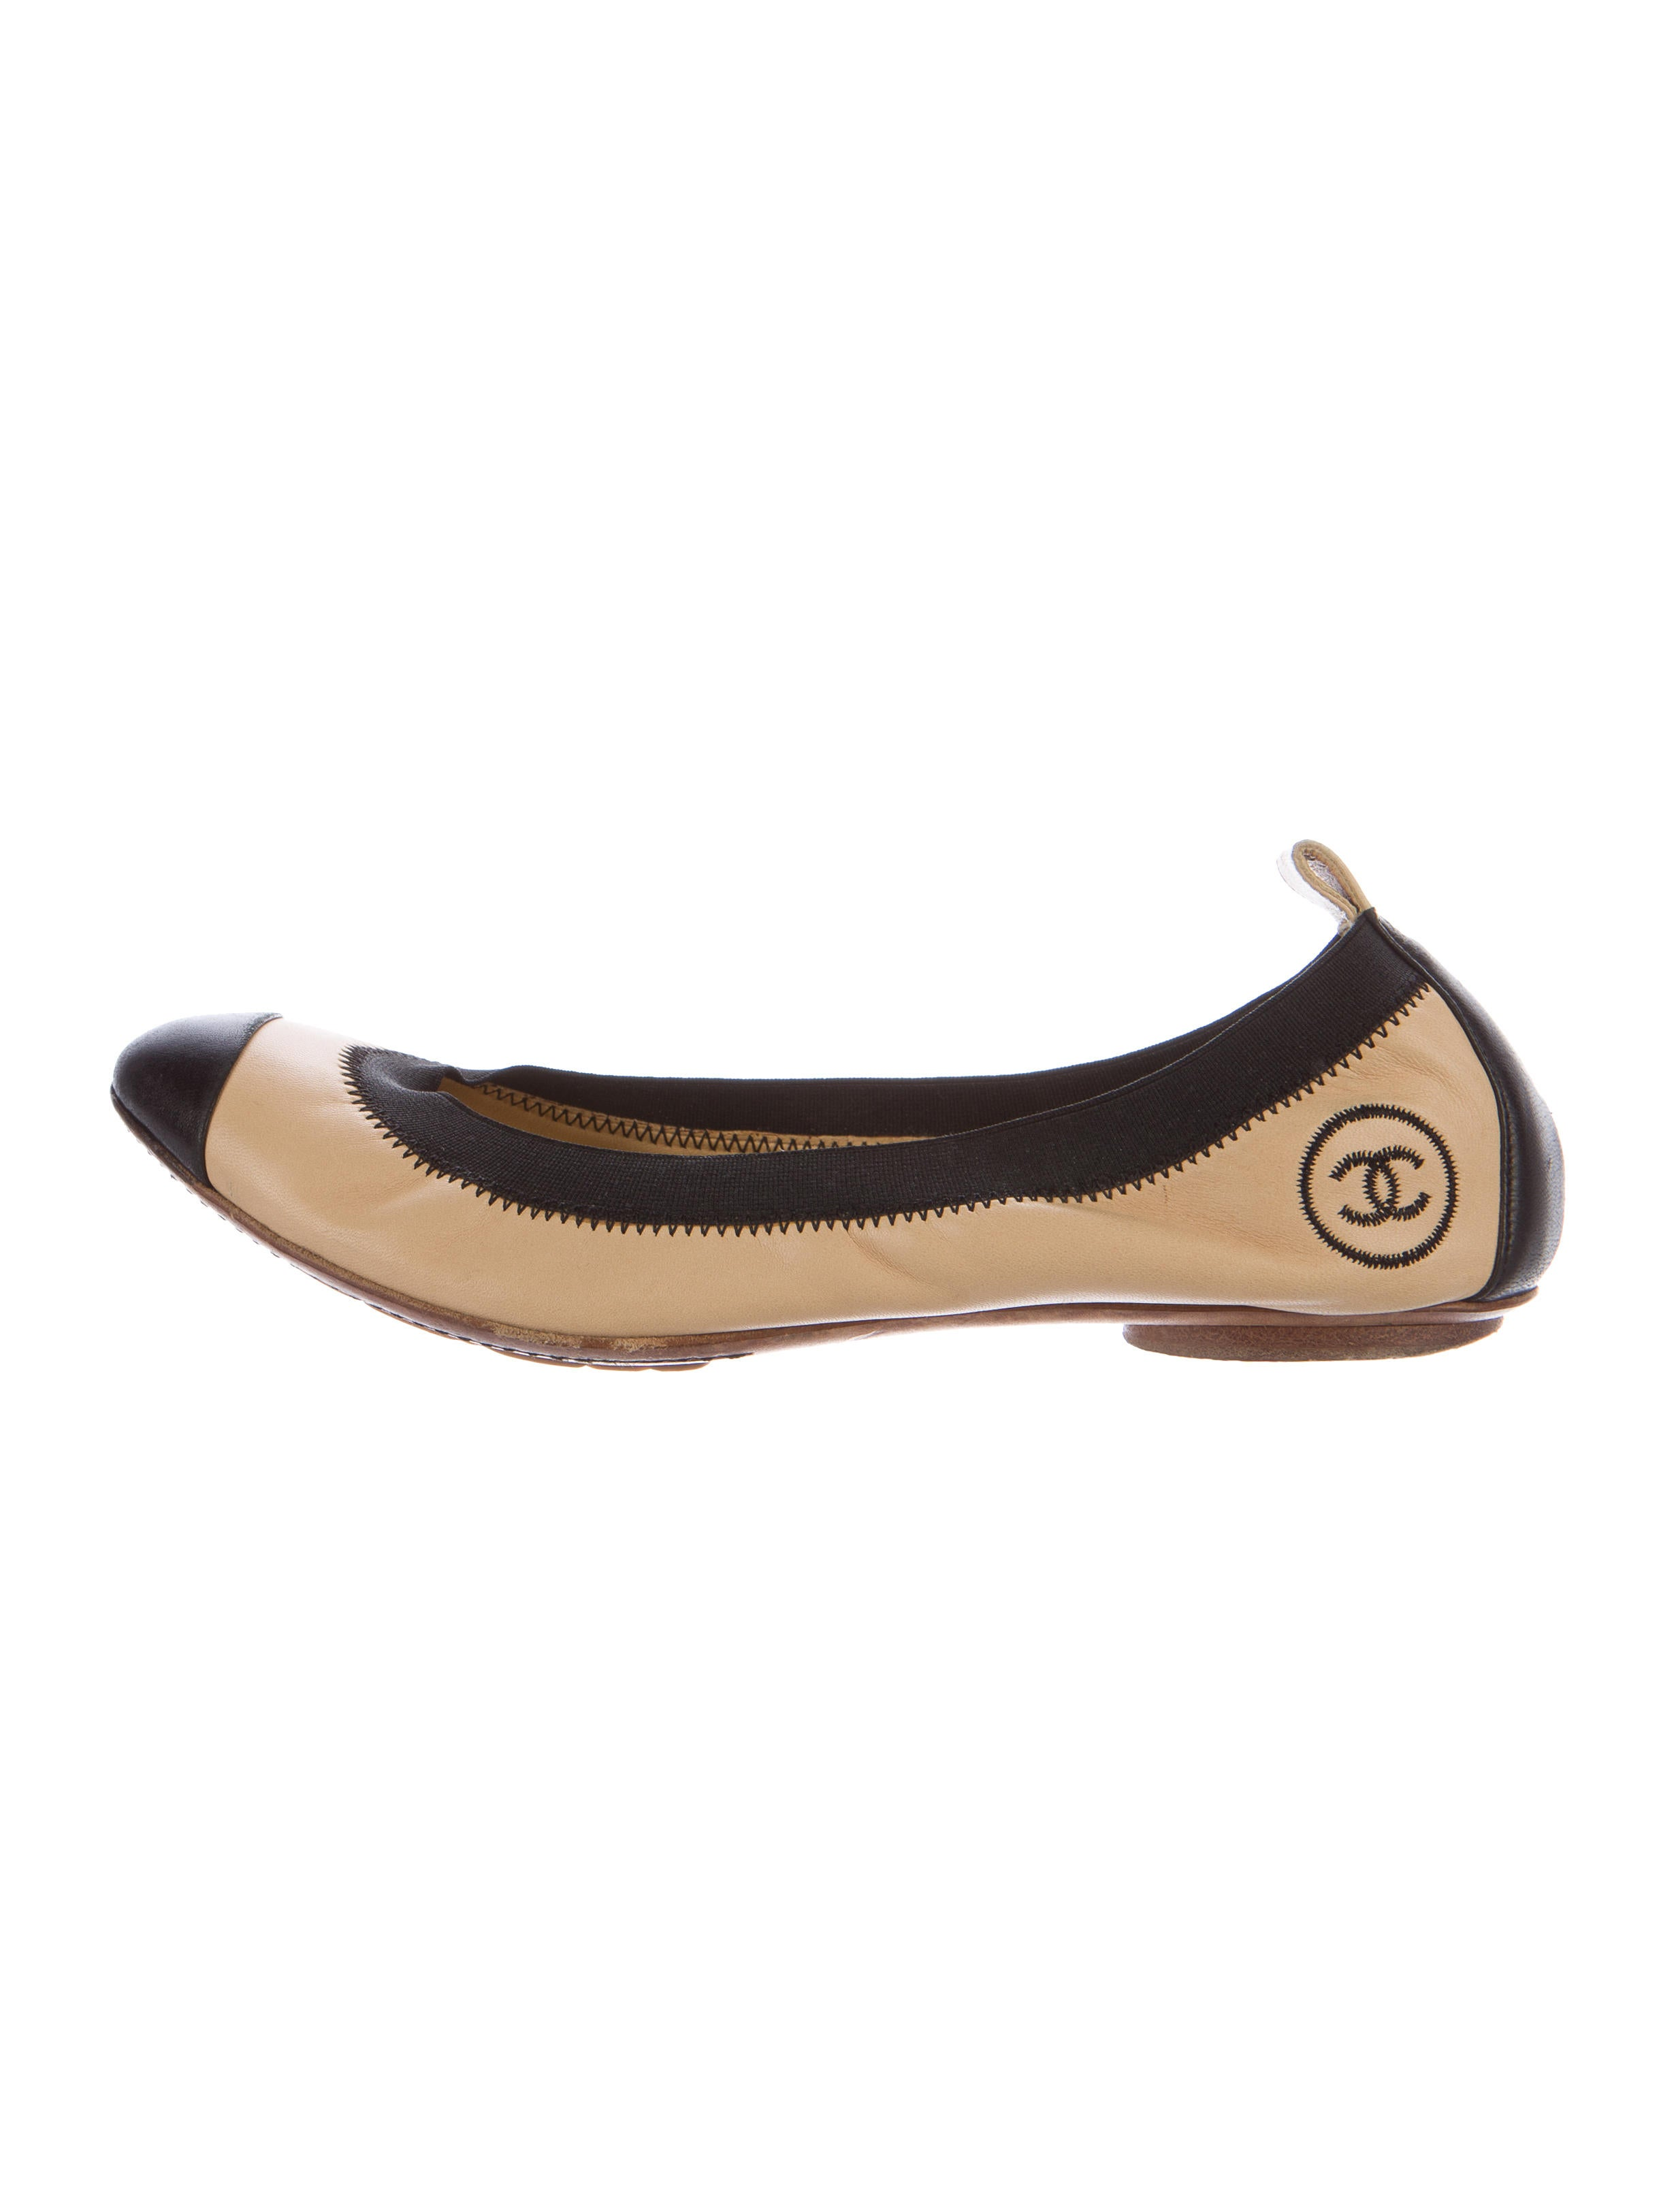 chanel stretch spirit leather flats shoes cha164460